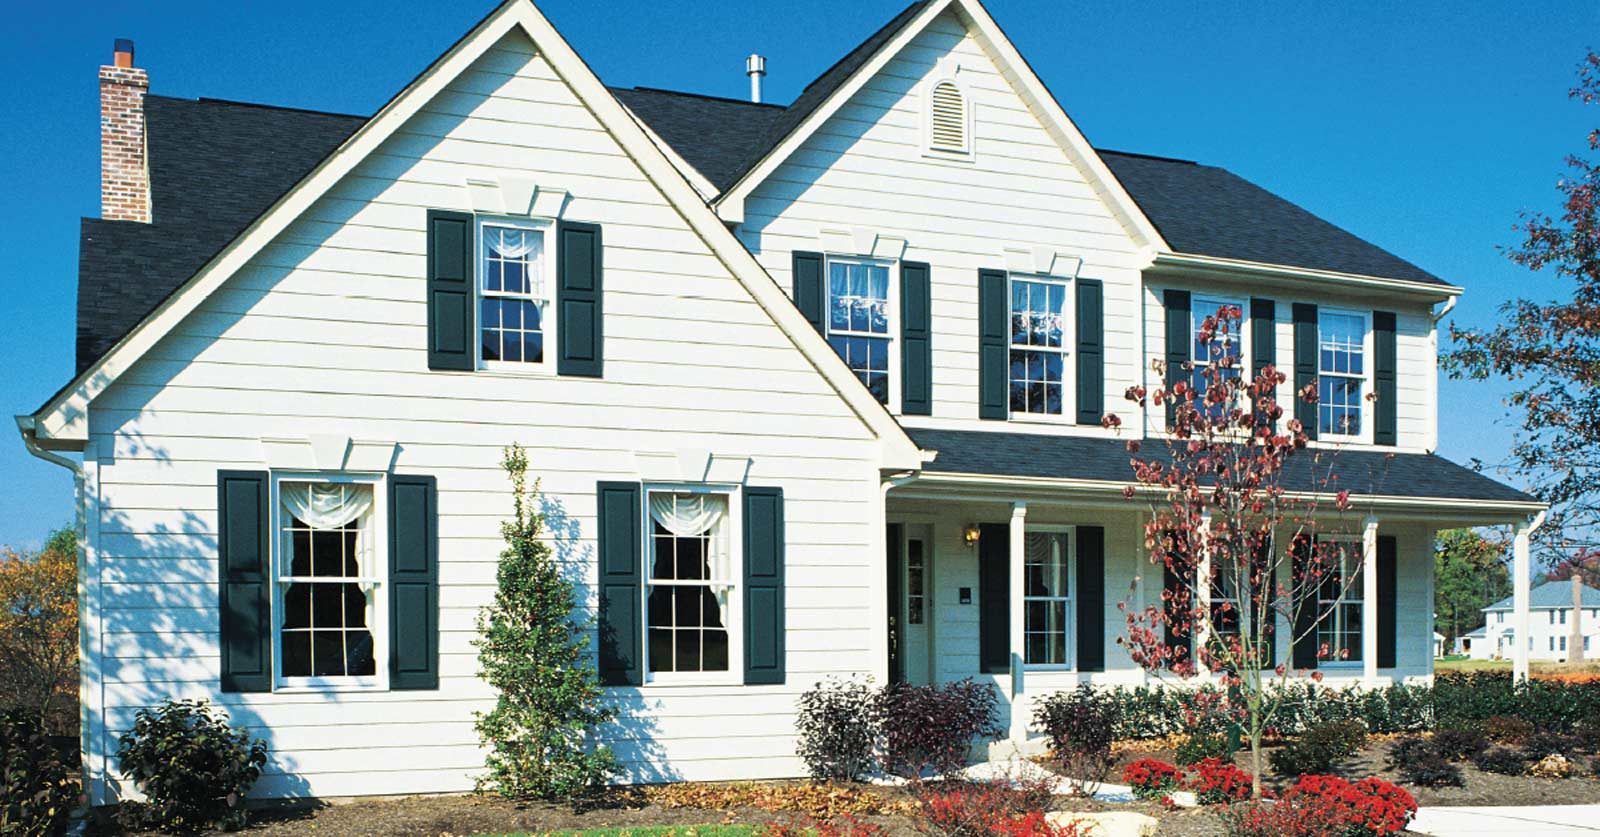 Sharing 8 steps to refinance your home mortgage